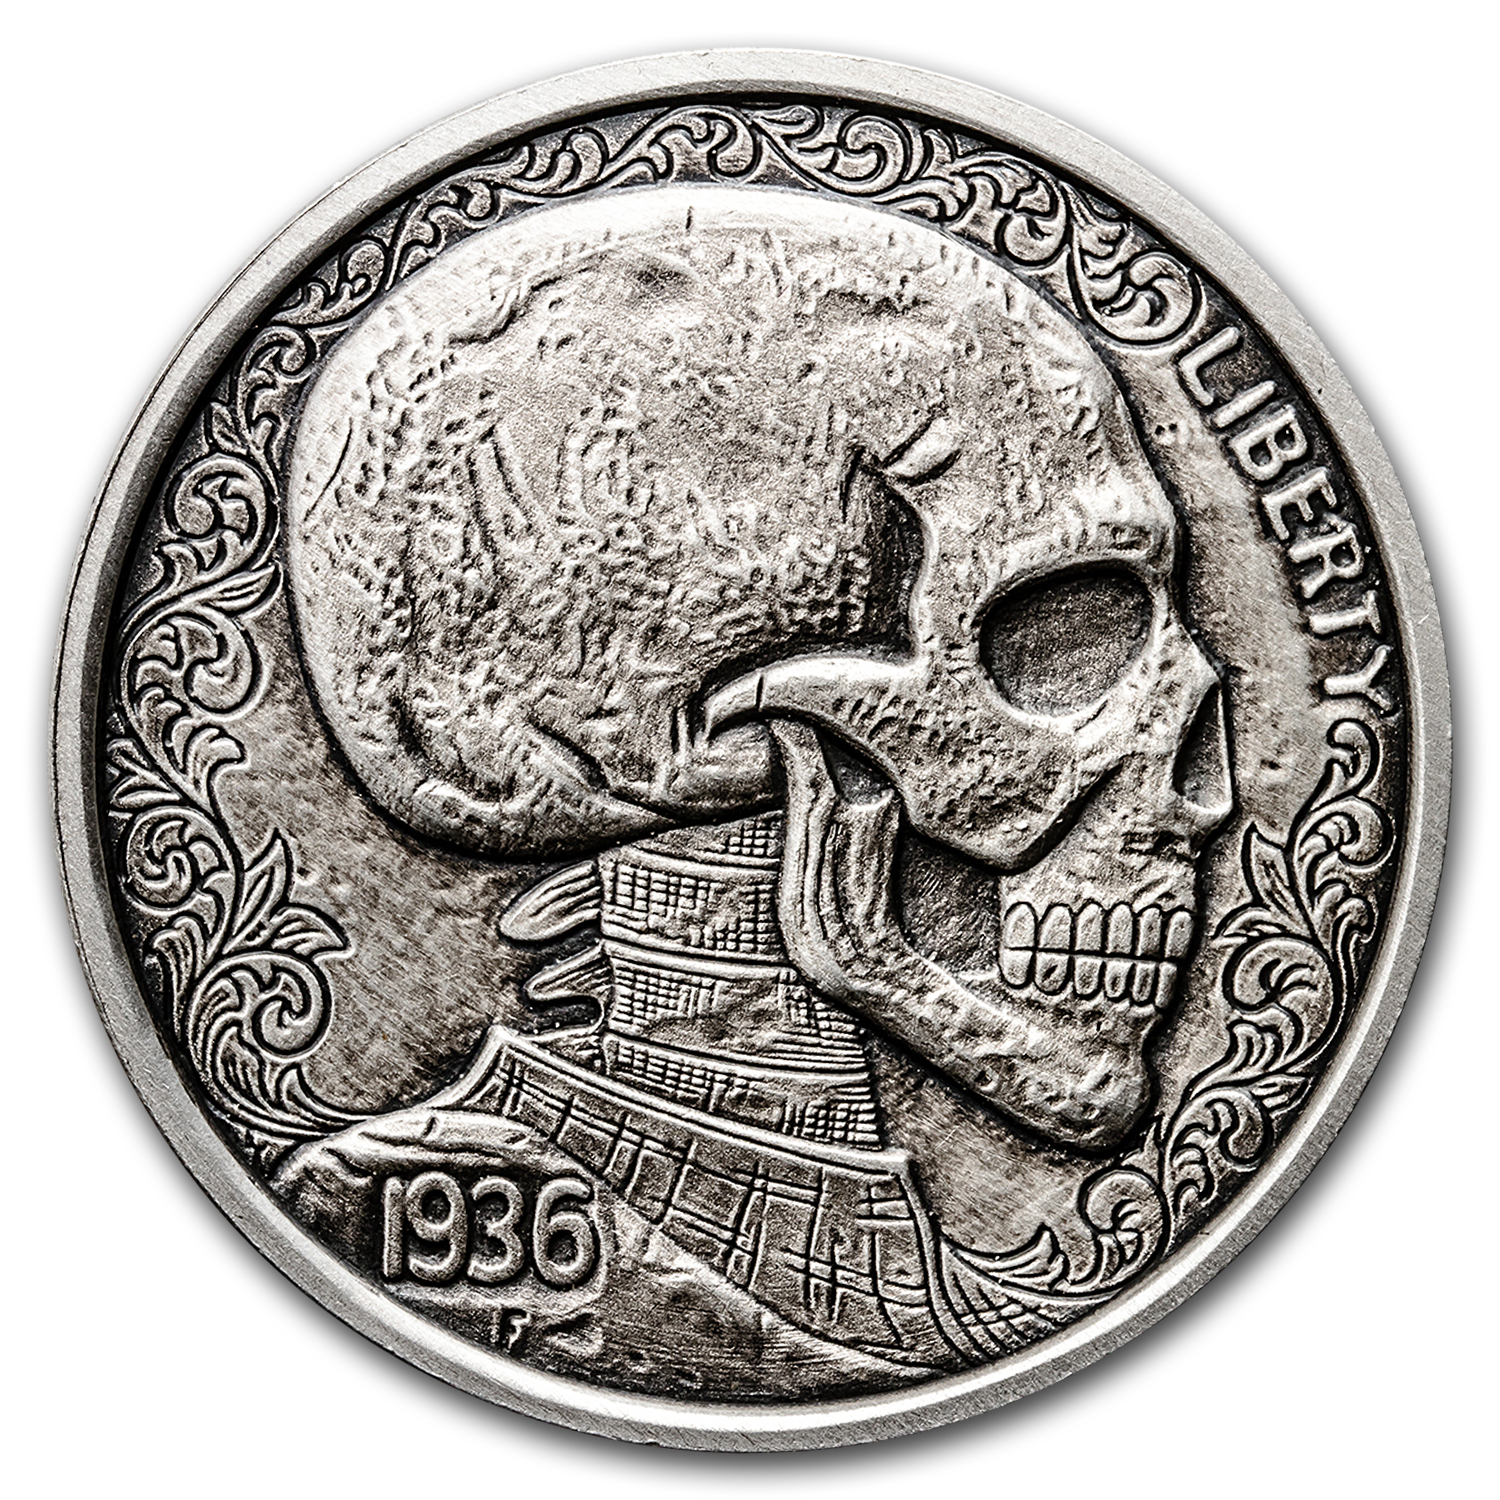 1 oz Silver Antique Round Hobo Nickel Replica (Skulls & Scrolls)